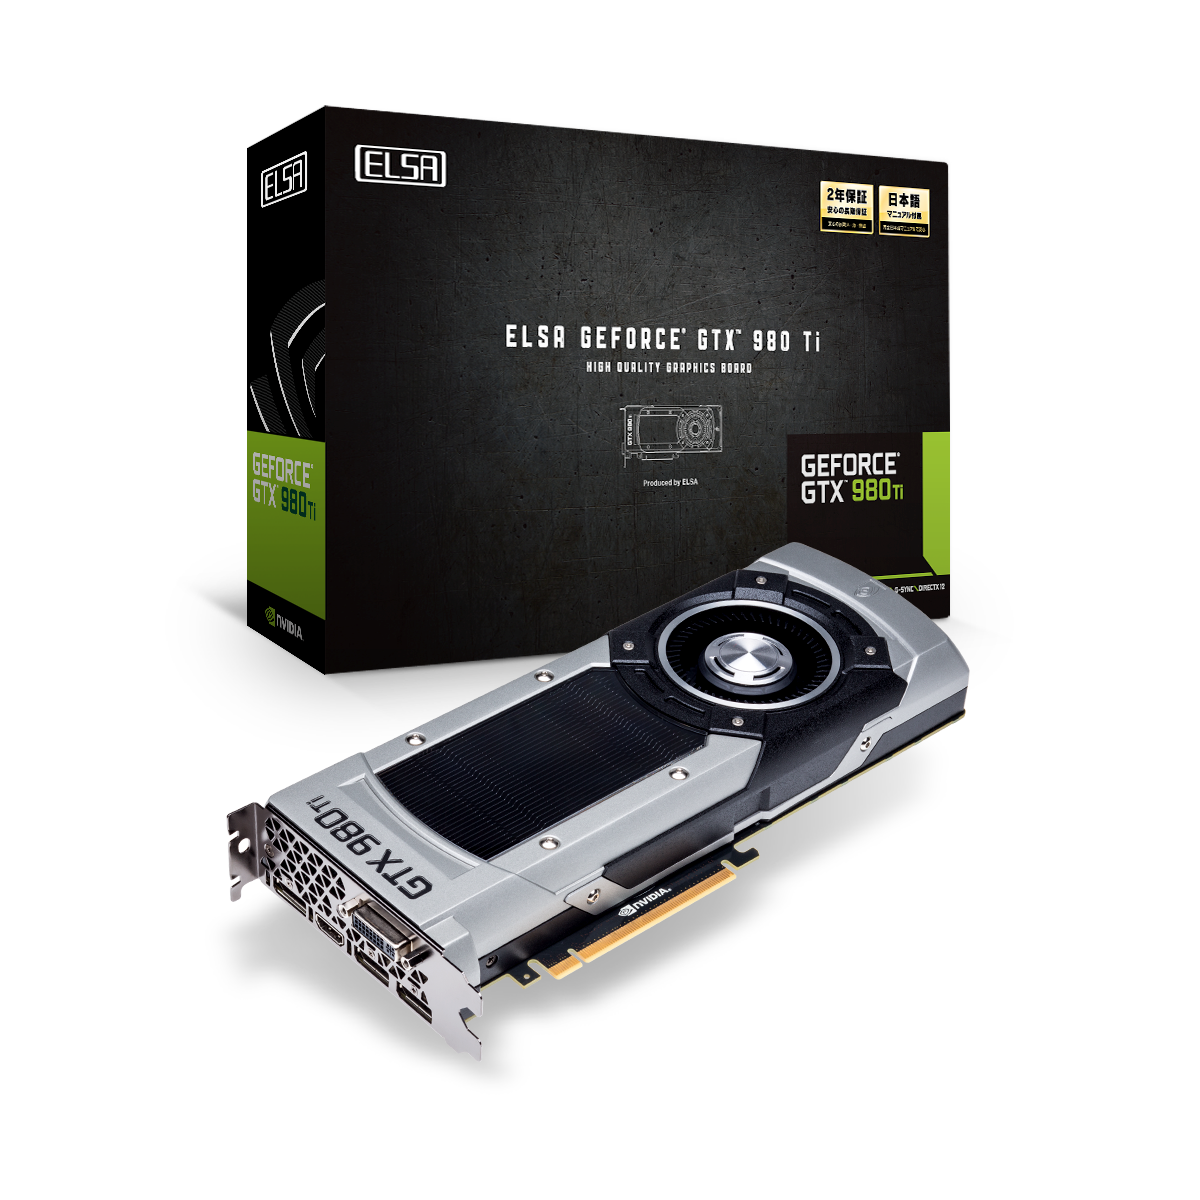 elsa_geforce_gtx_980_ti_6gb_box_card